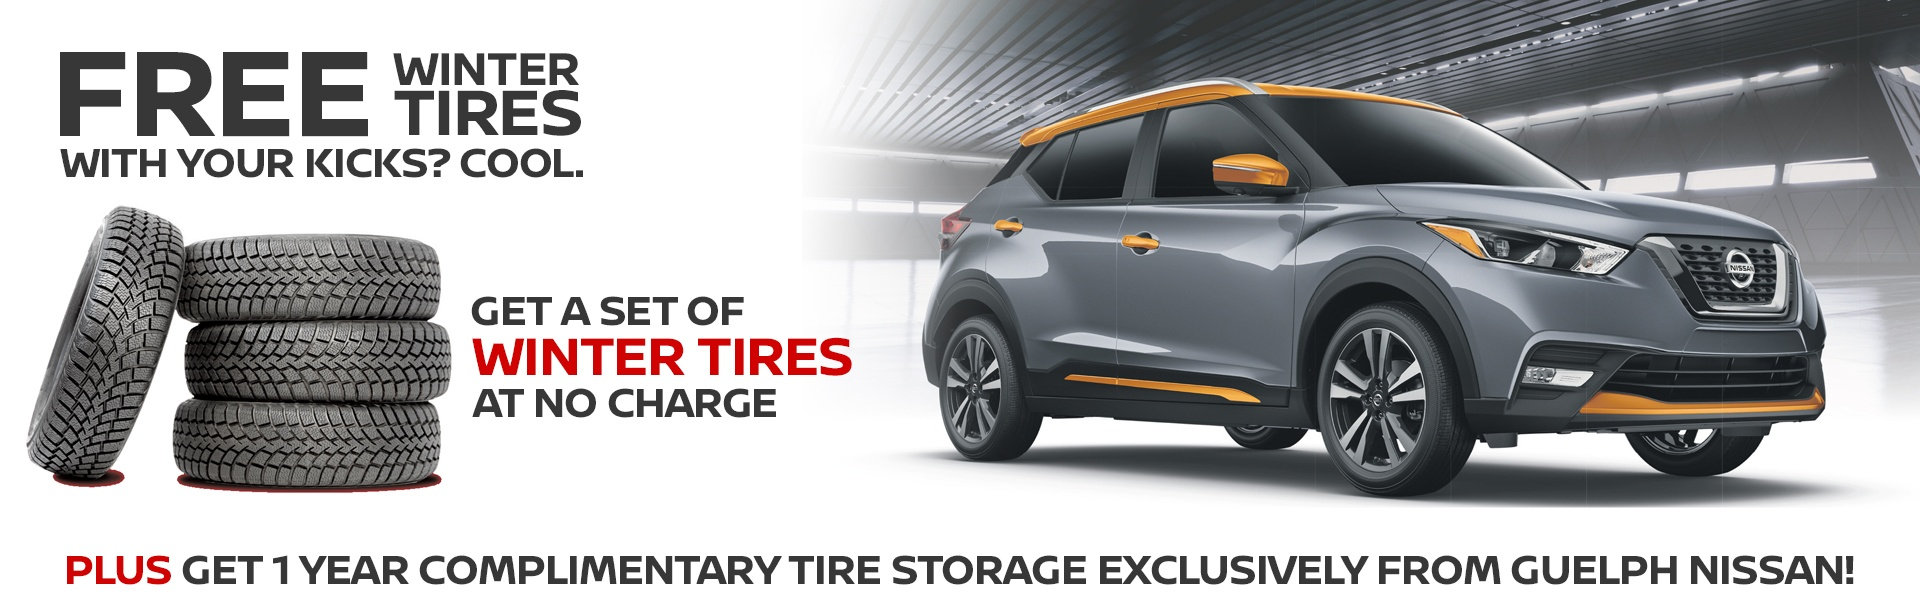 Guelph Nissan Kicks Free Winter Tires Event, Only until September 30th